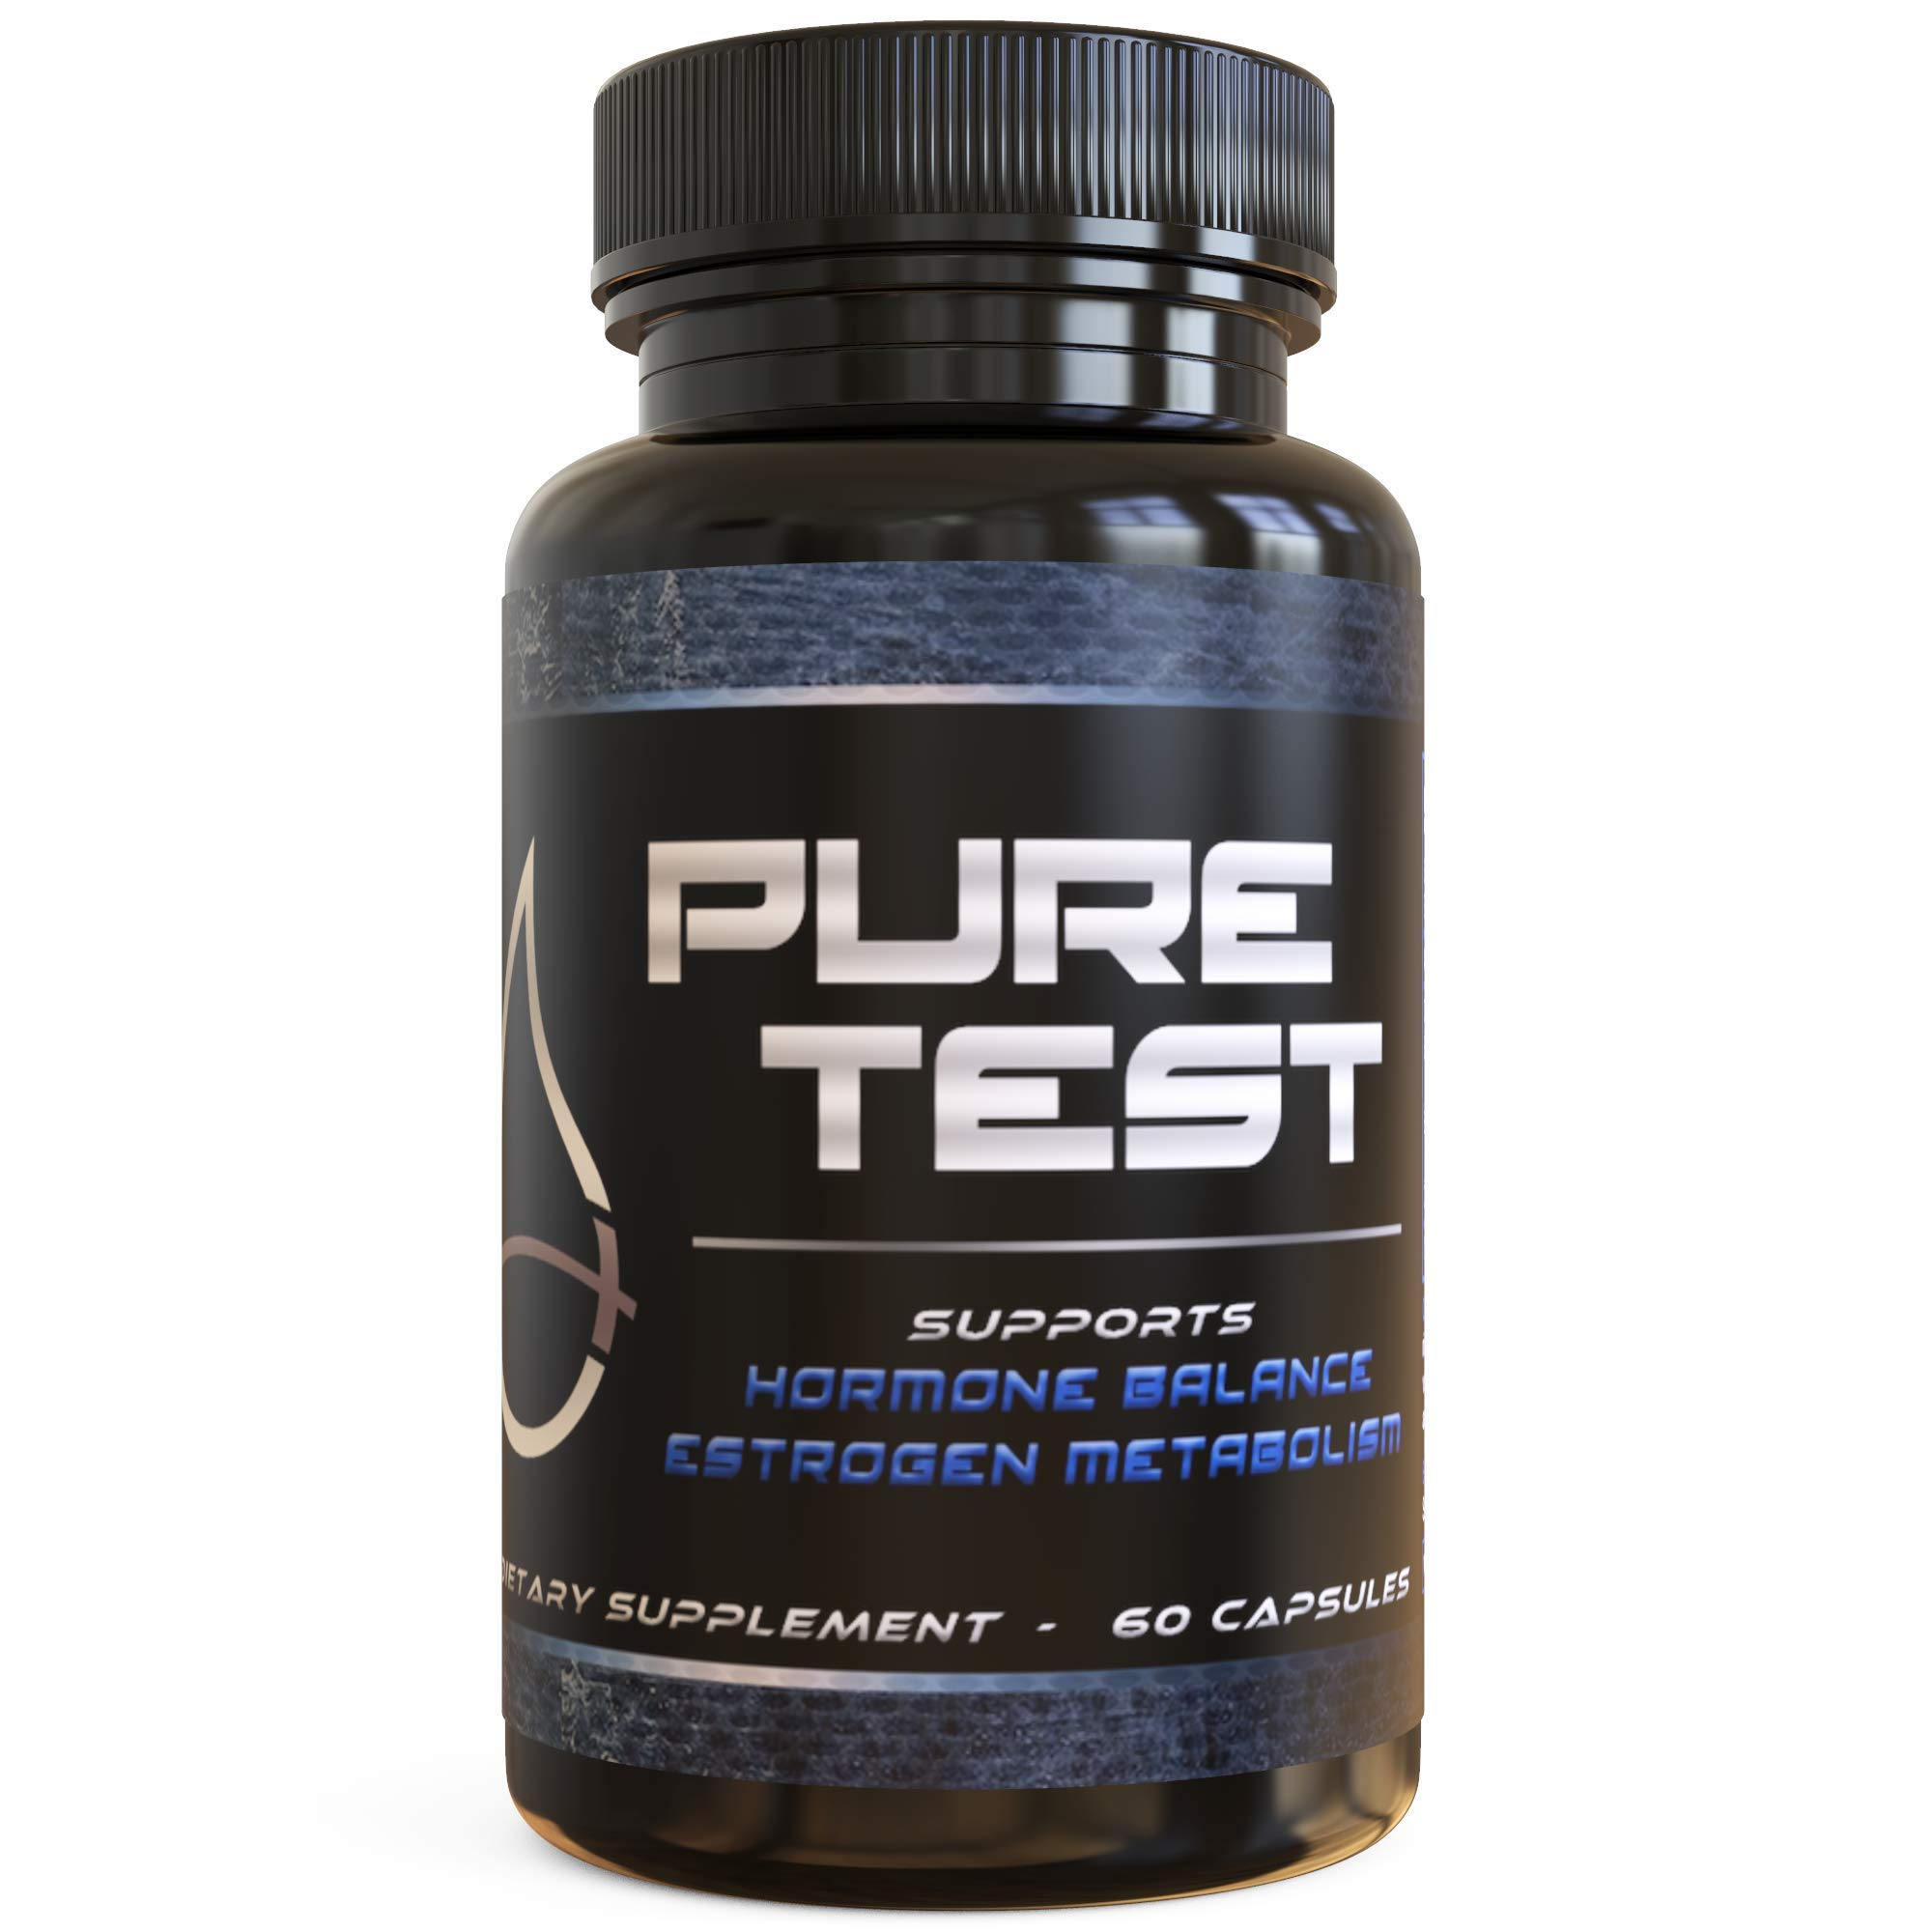 PURE TEST by Pure Sweat All Natural Estrogen Blocker for Men - Natural Anti-Estrogen, Testosterone Booster - Boost Muscle Growth & Fat Loss - DIM